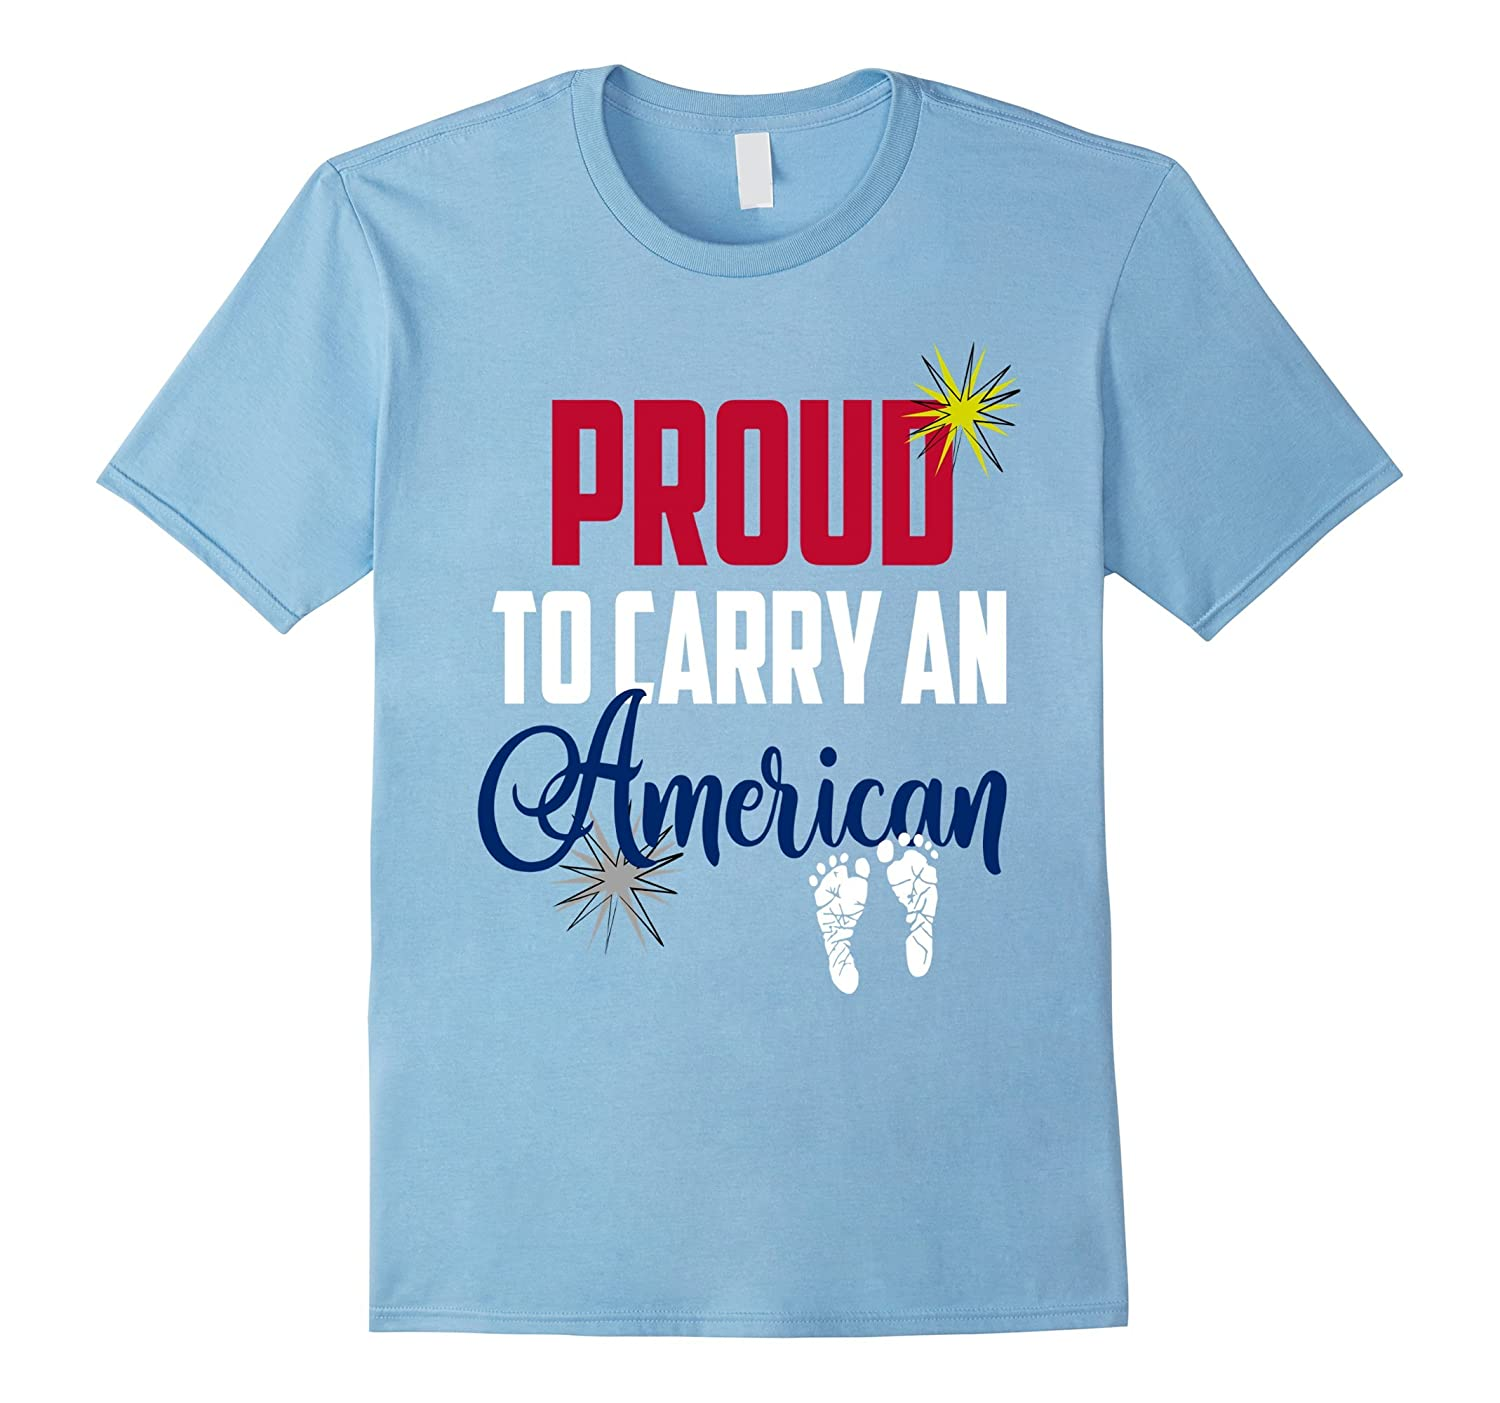 4th of July Maternity Shirt Pregnant Proud To Carry American-PL